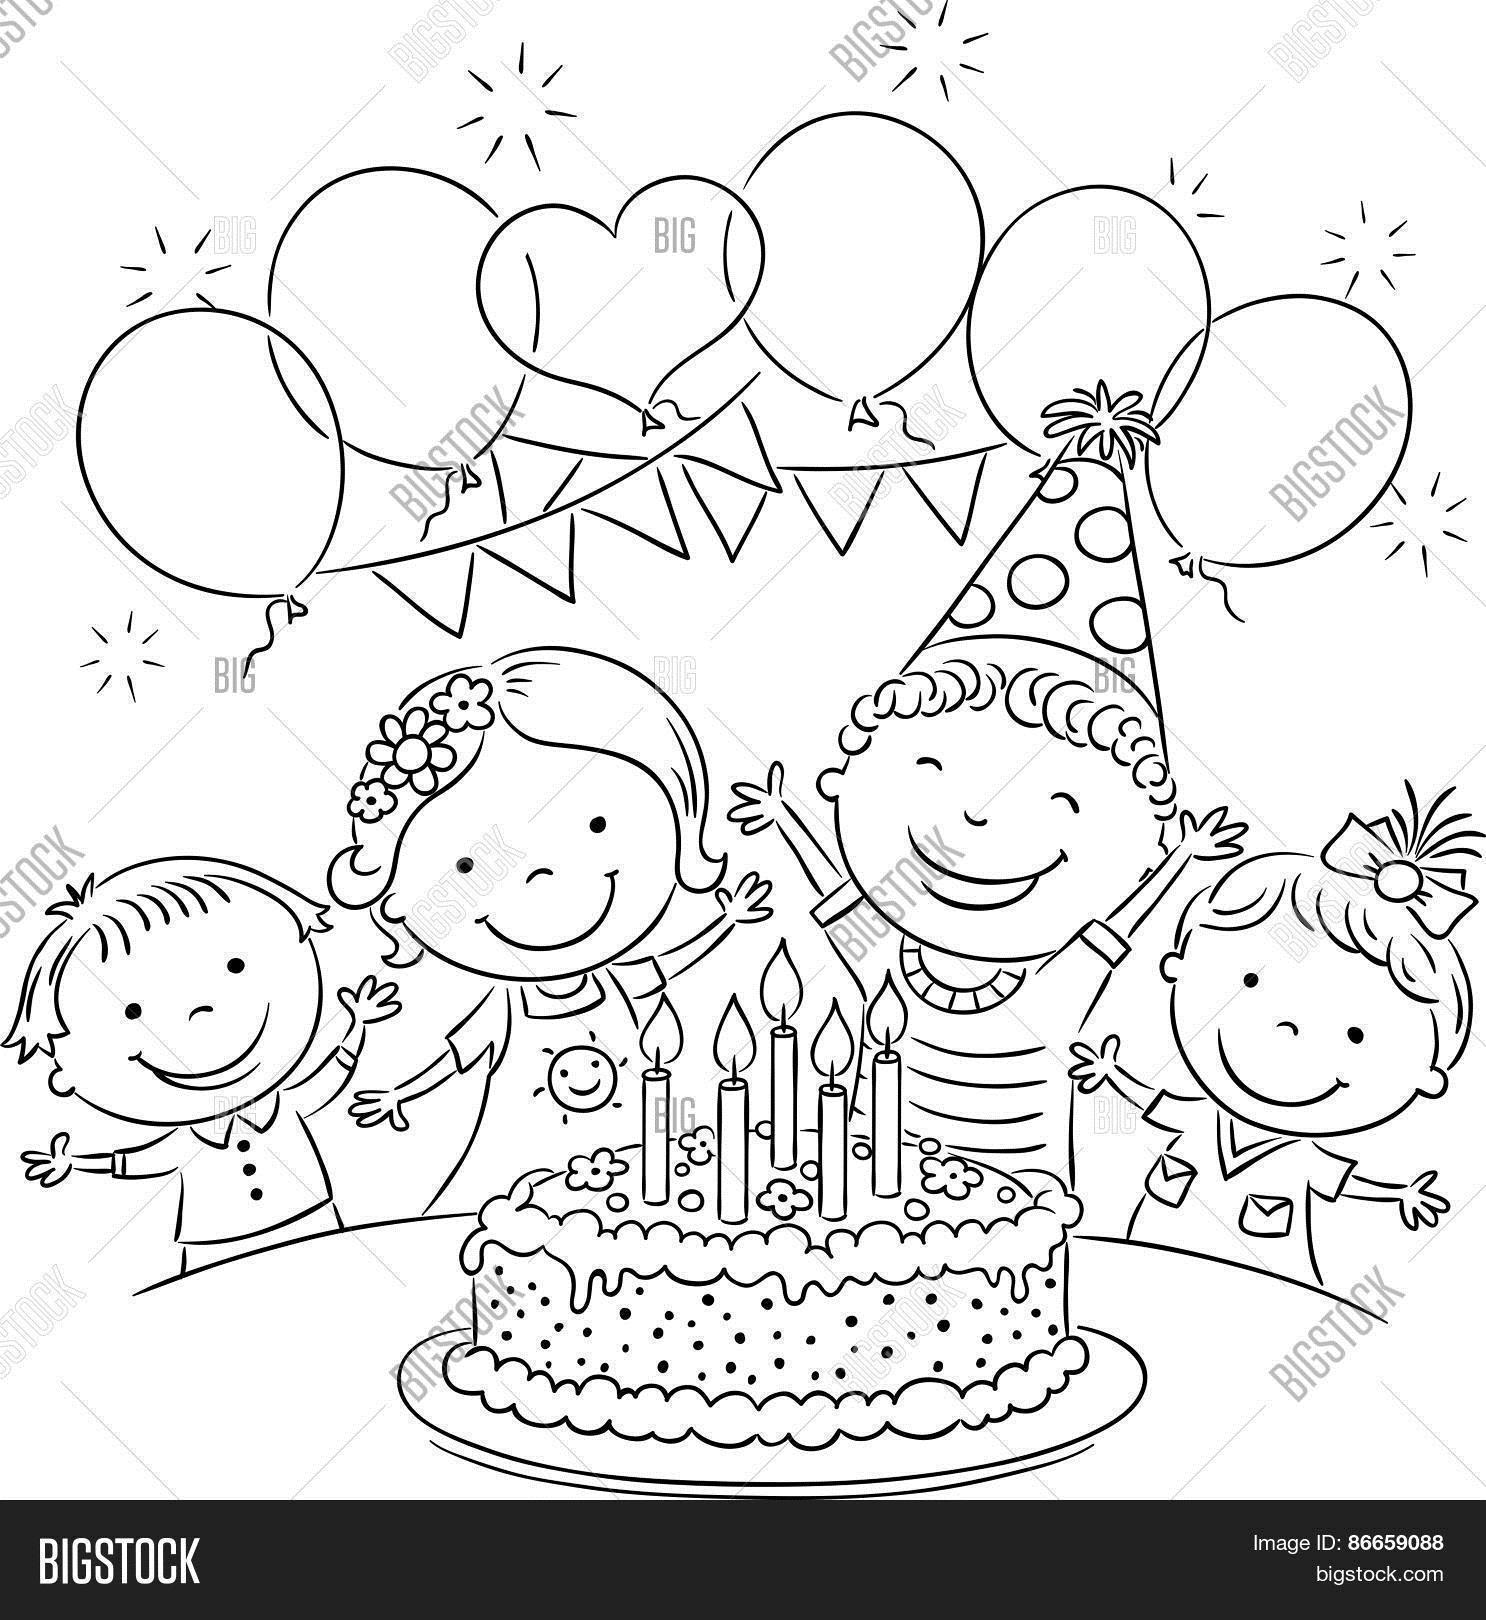 birthday party drawing images ; 86659088